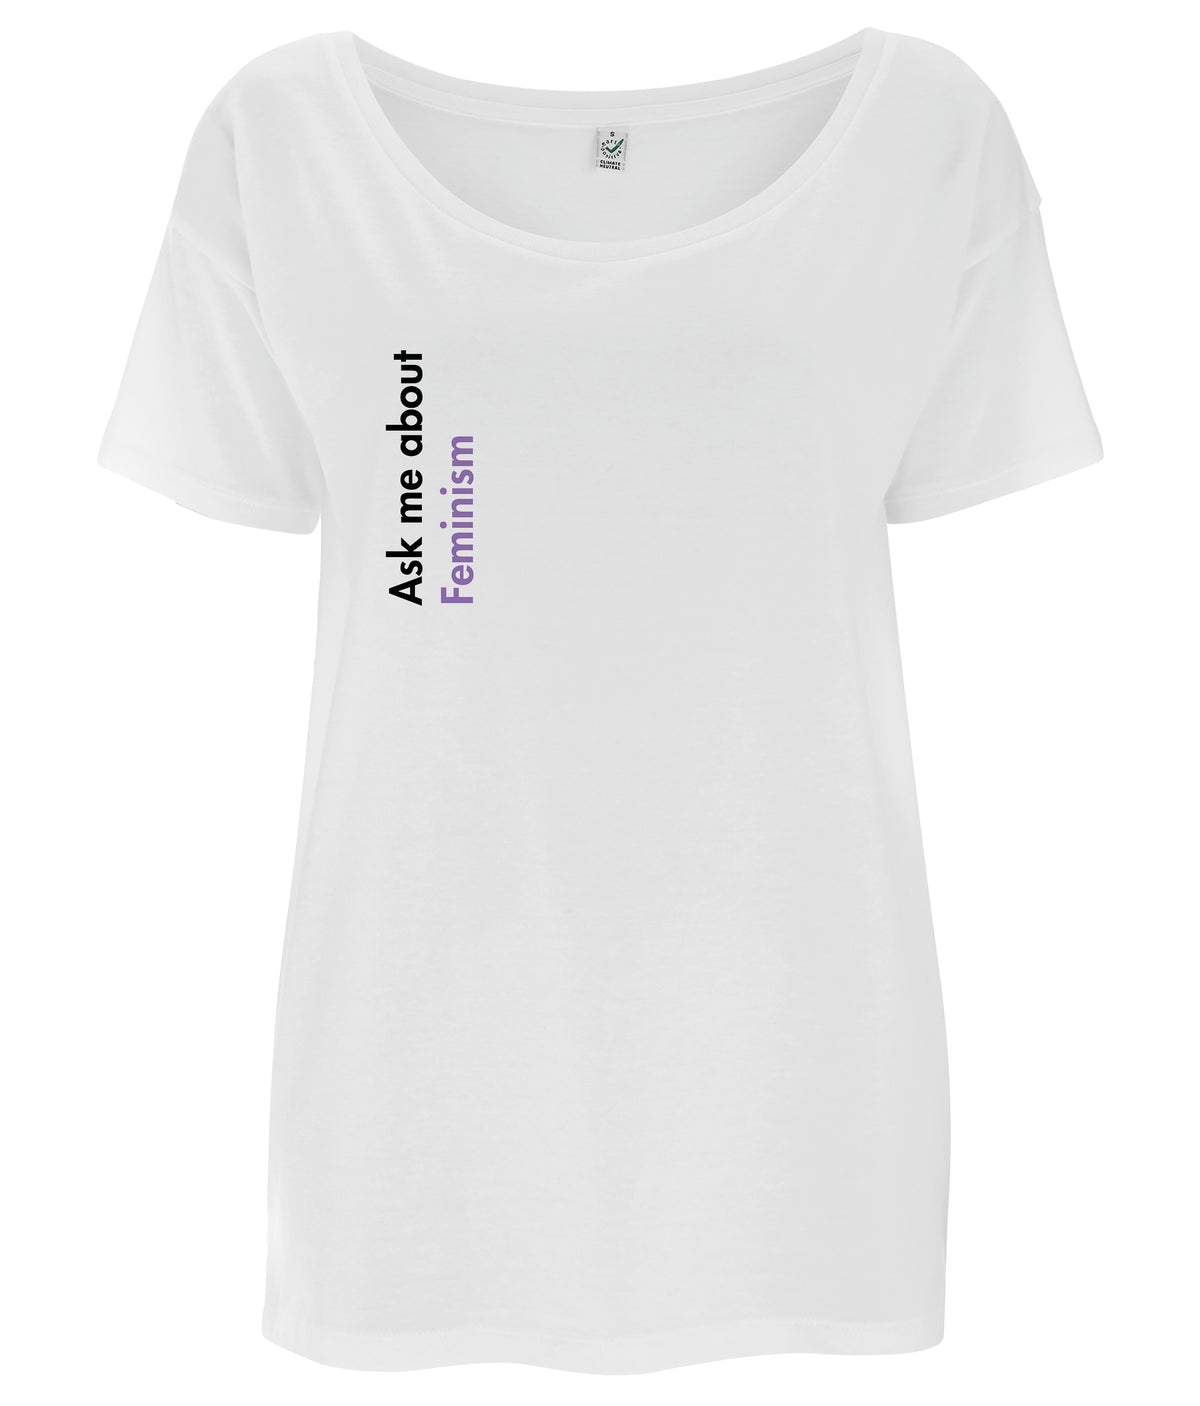 Ask Me About Feminism Tencel Blend Oversized Feminist T Shirt White